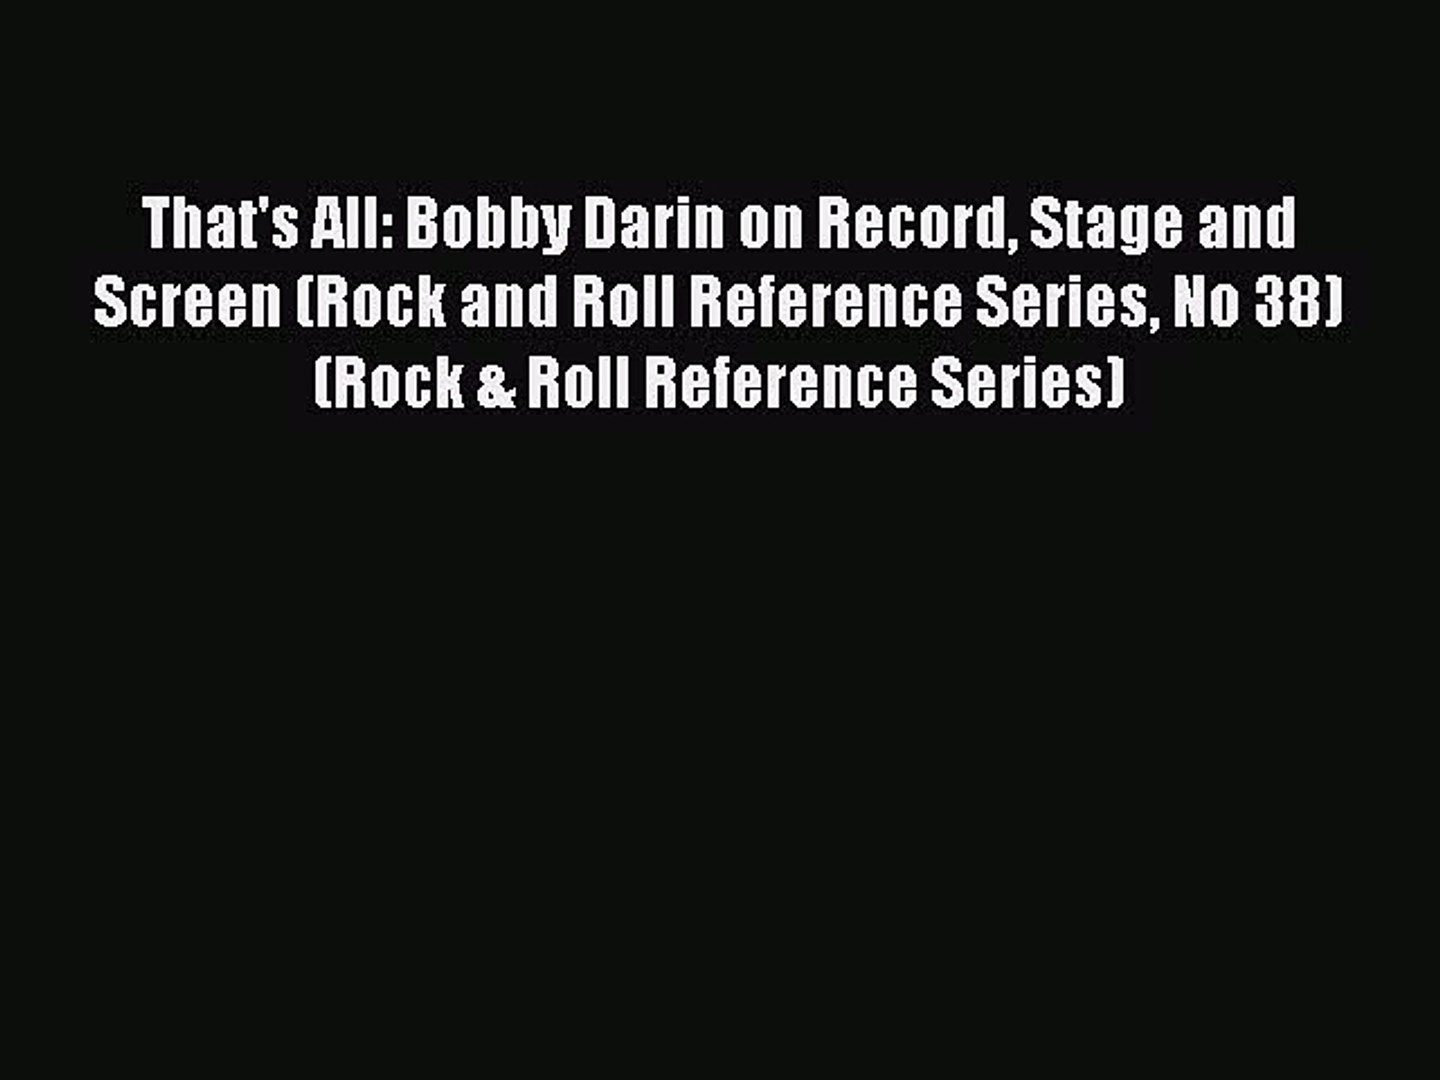 [Read book] That's All: Bobby Darin on Record Stage and Screen (Rock and Roll Reference Series